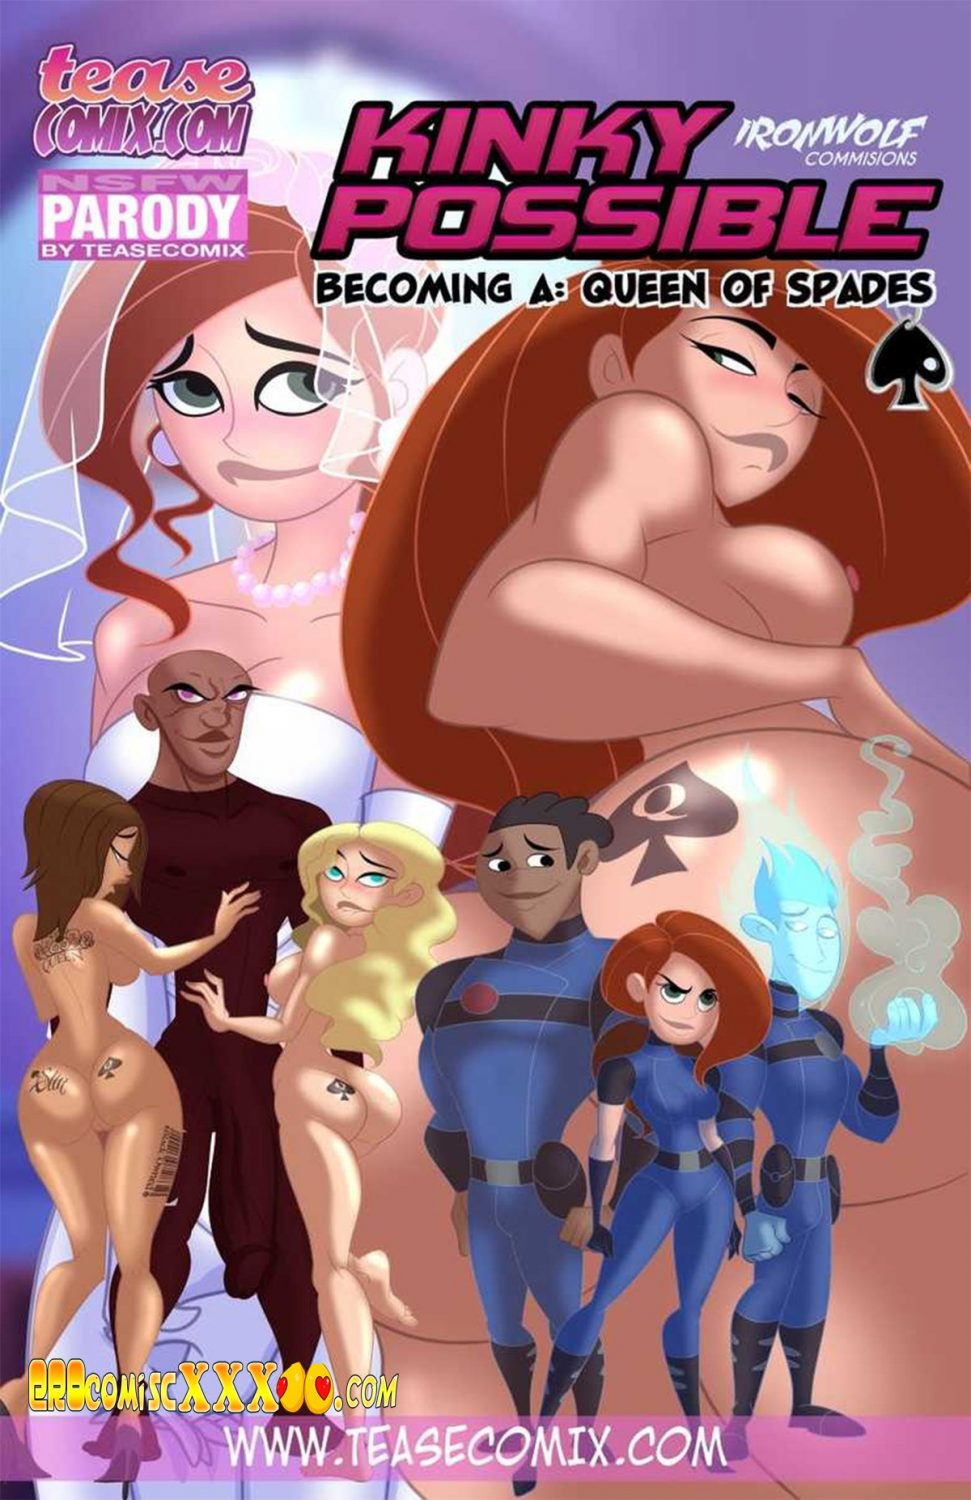 1 15 971x1500 - Kinky Possible - Becoming A Queen Of Spades (Kim Possible) - Tease Comix.